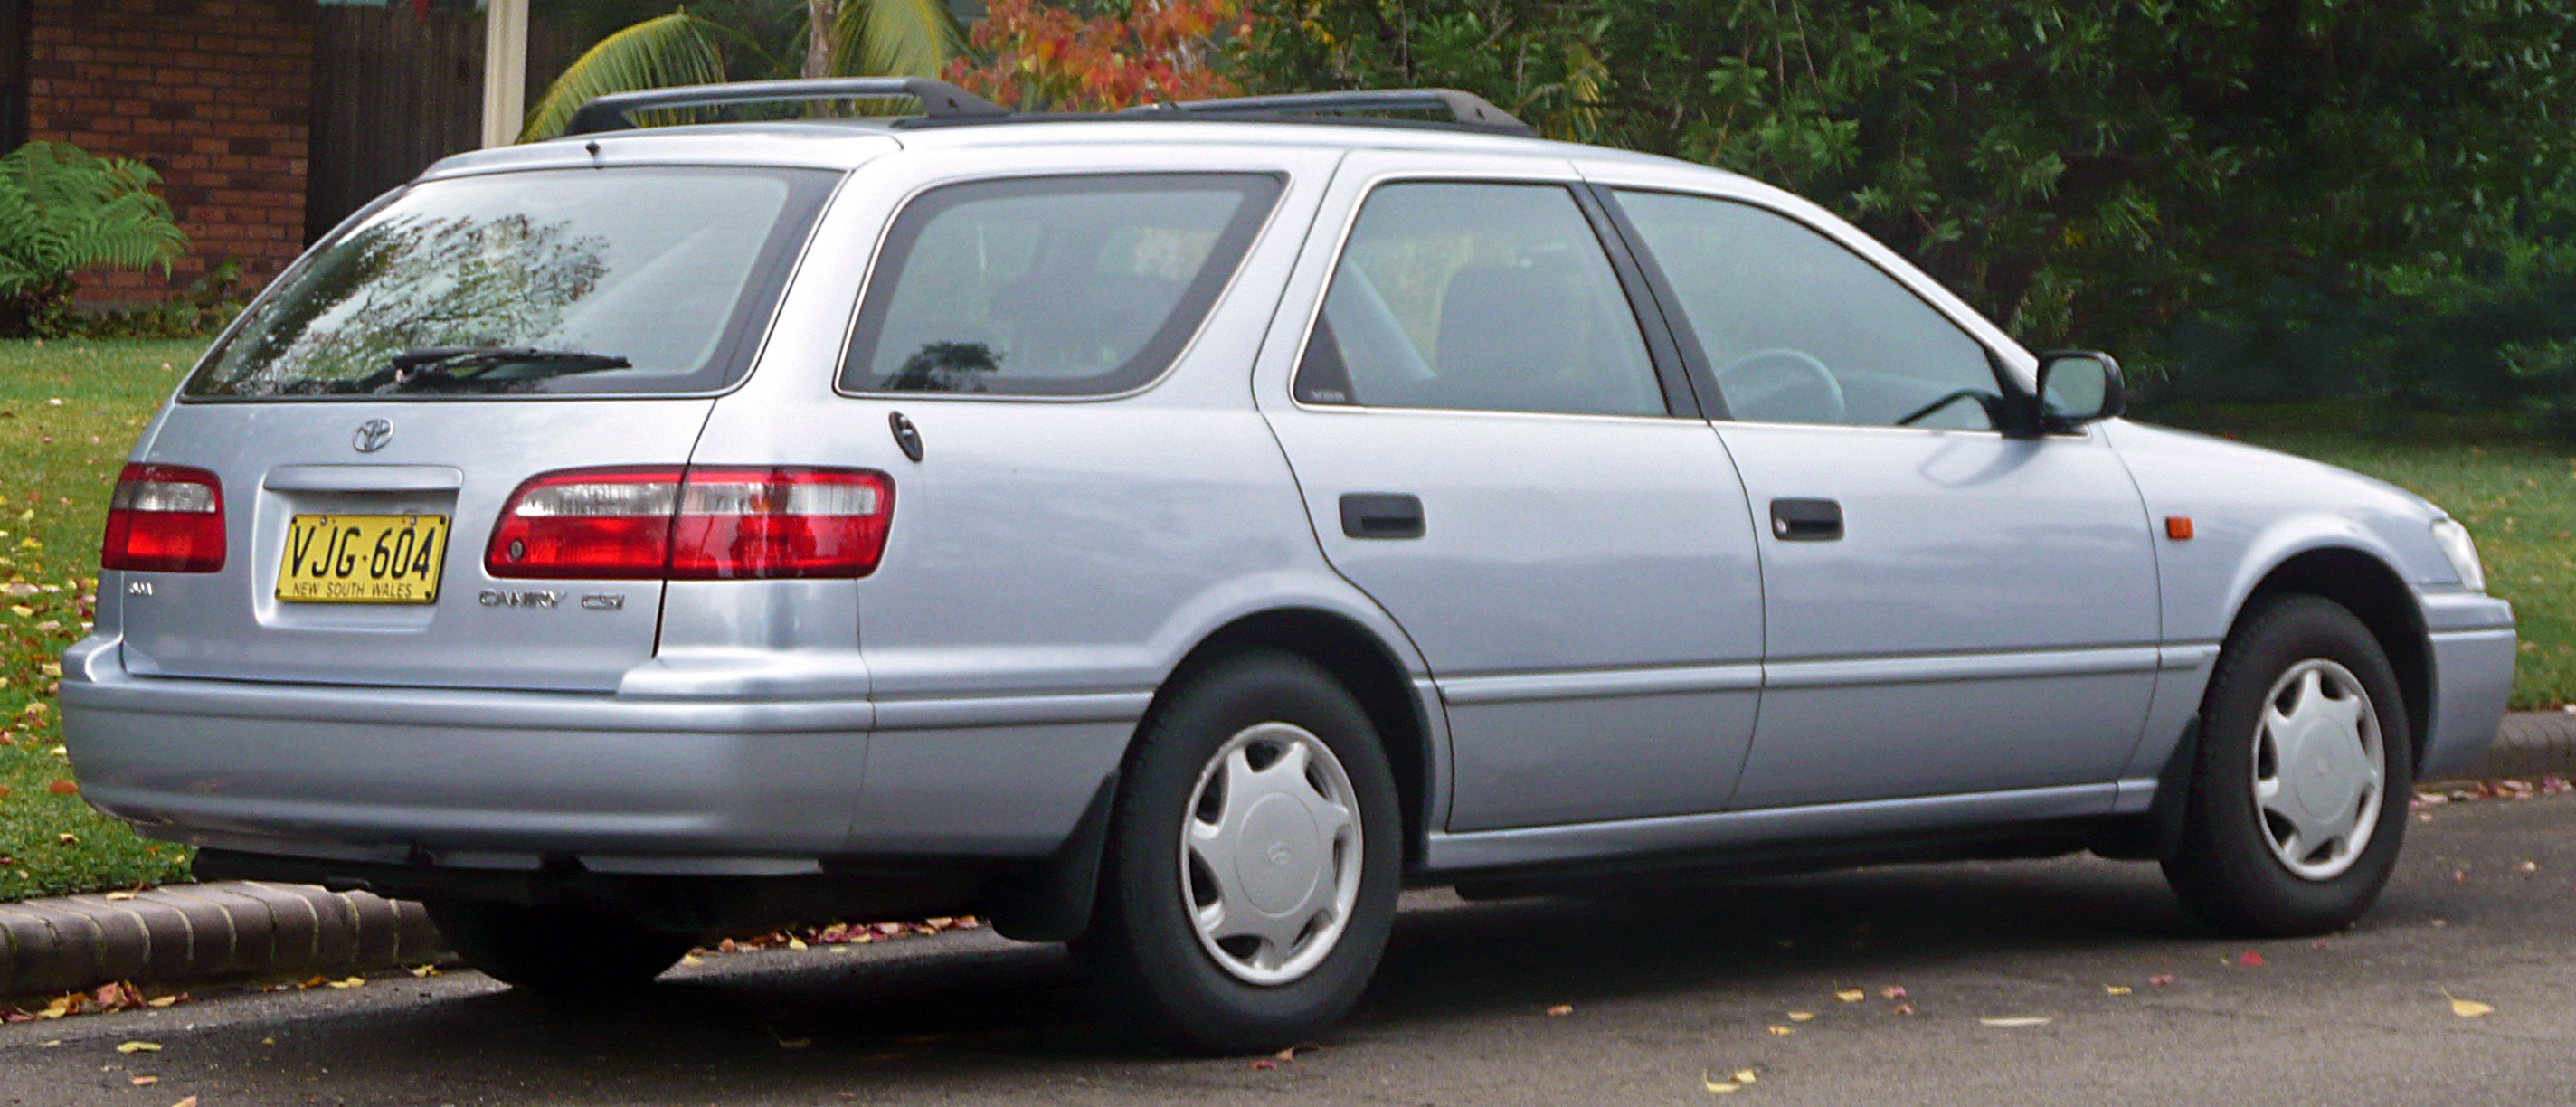 File:1998-2000 Toyota Camry (SXV20R) CSi station wagon 04.jpg - Wikimedia Commons